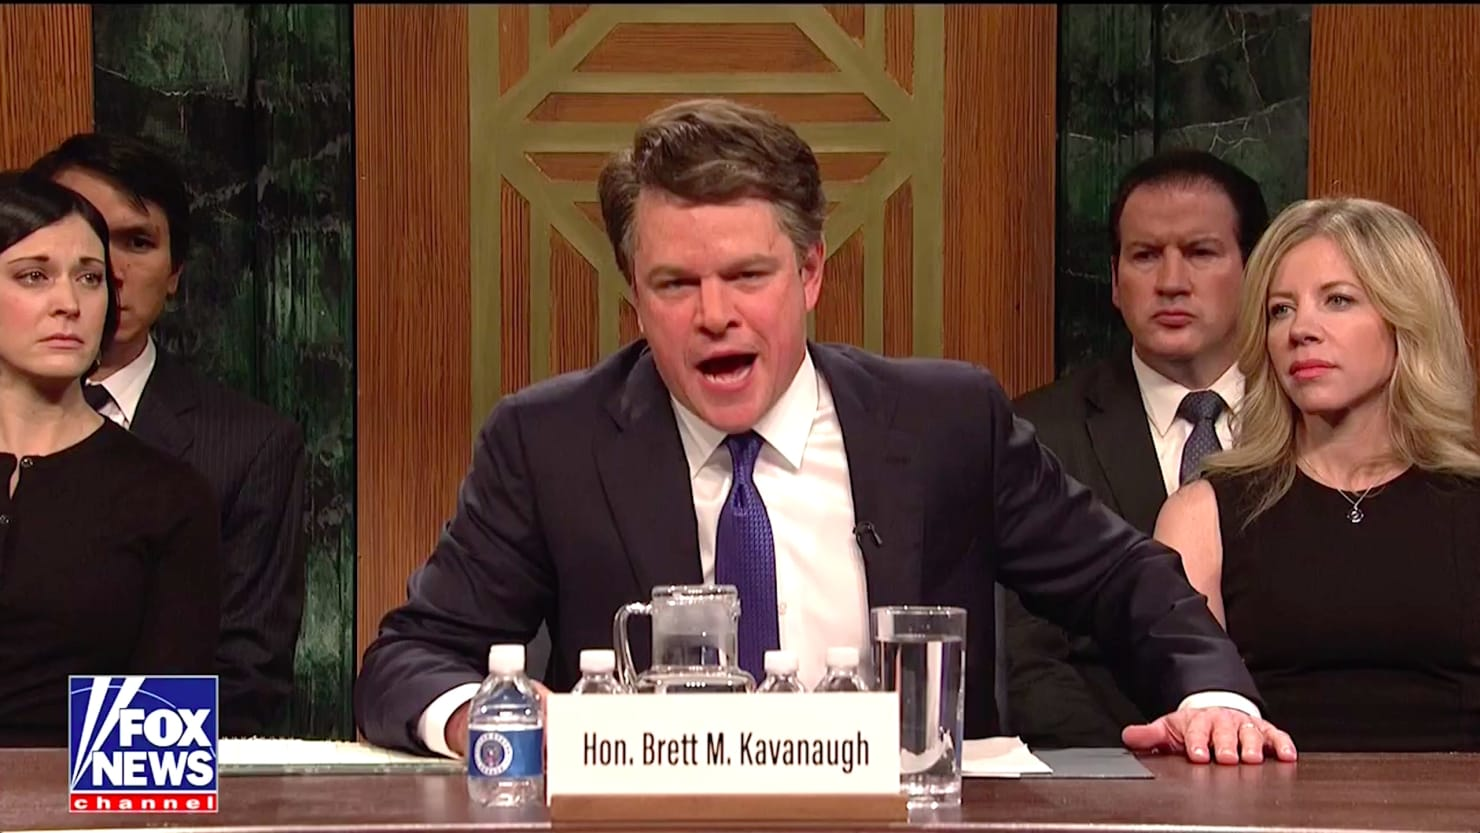 SNL: Matt Damon Absolutely Nails Brett Kavanaugh in Season Premiere